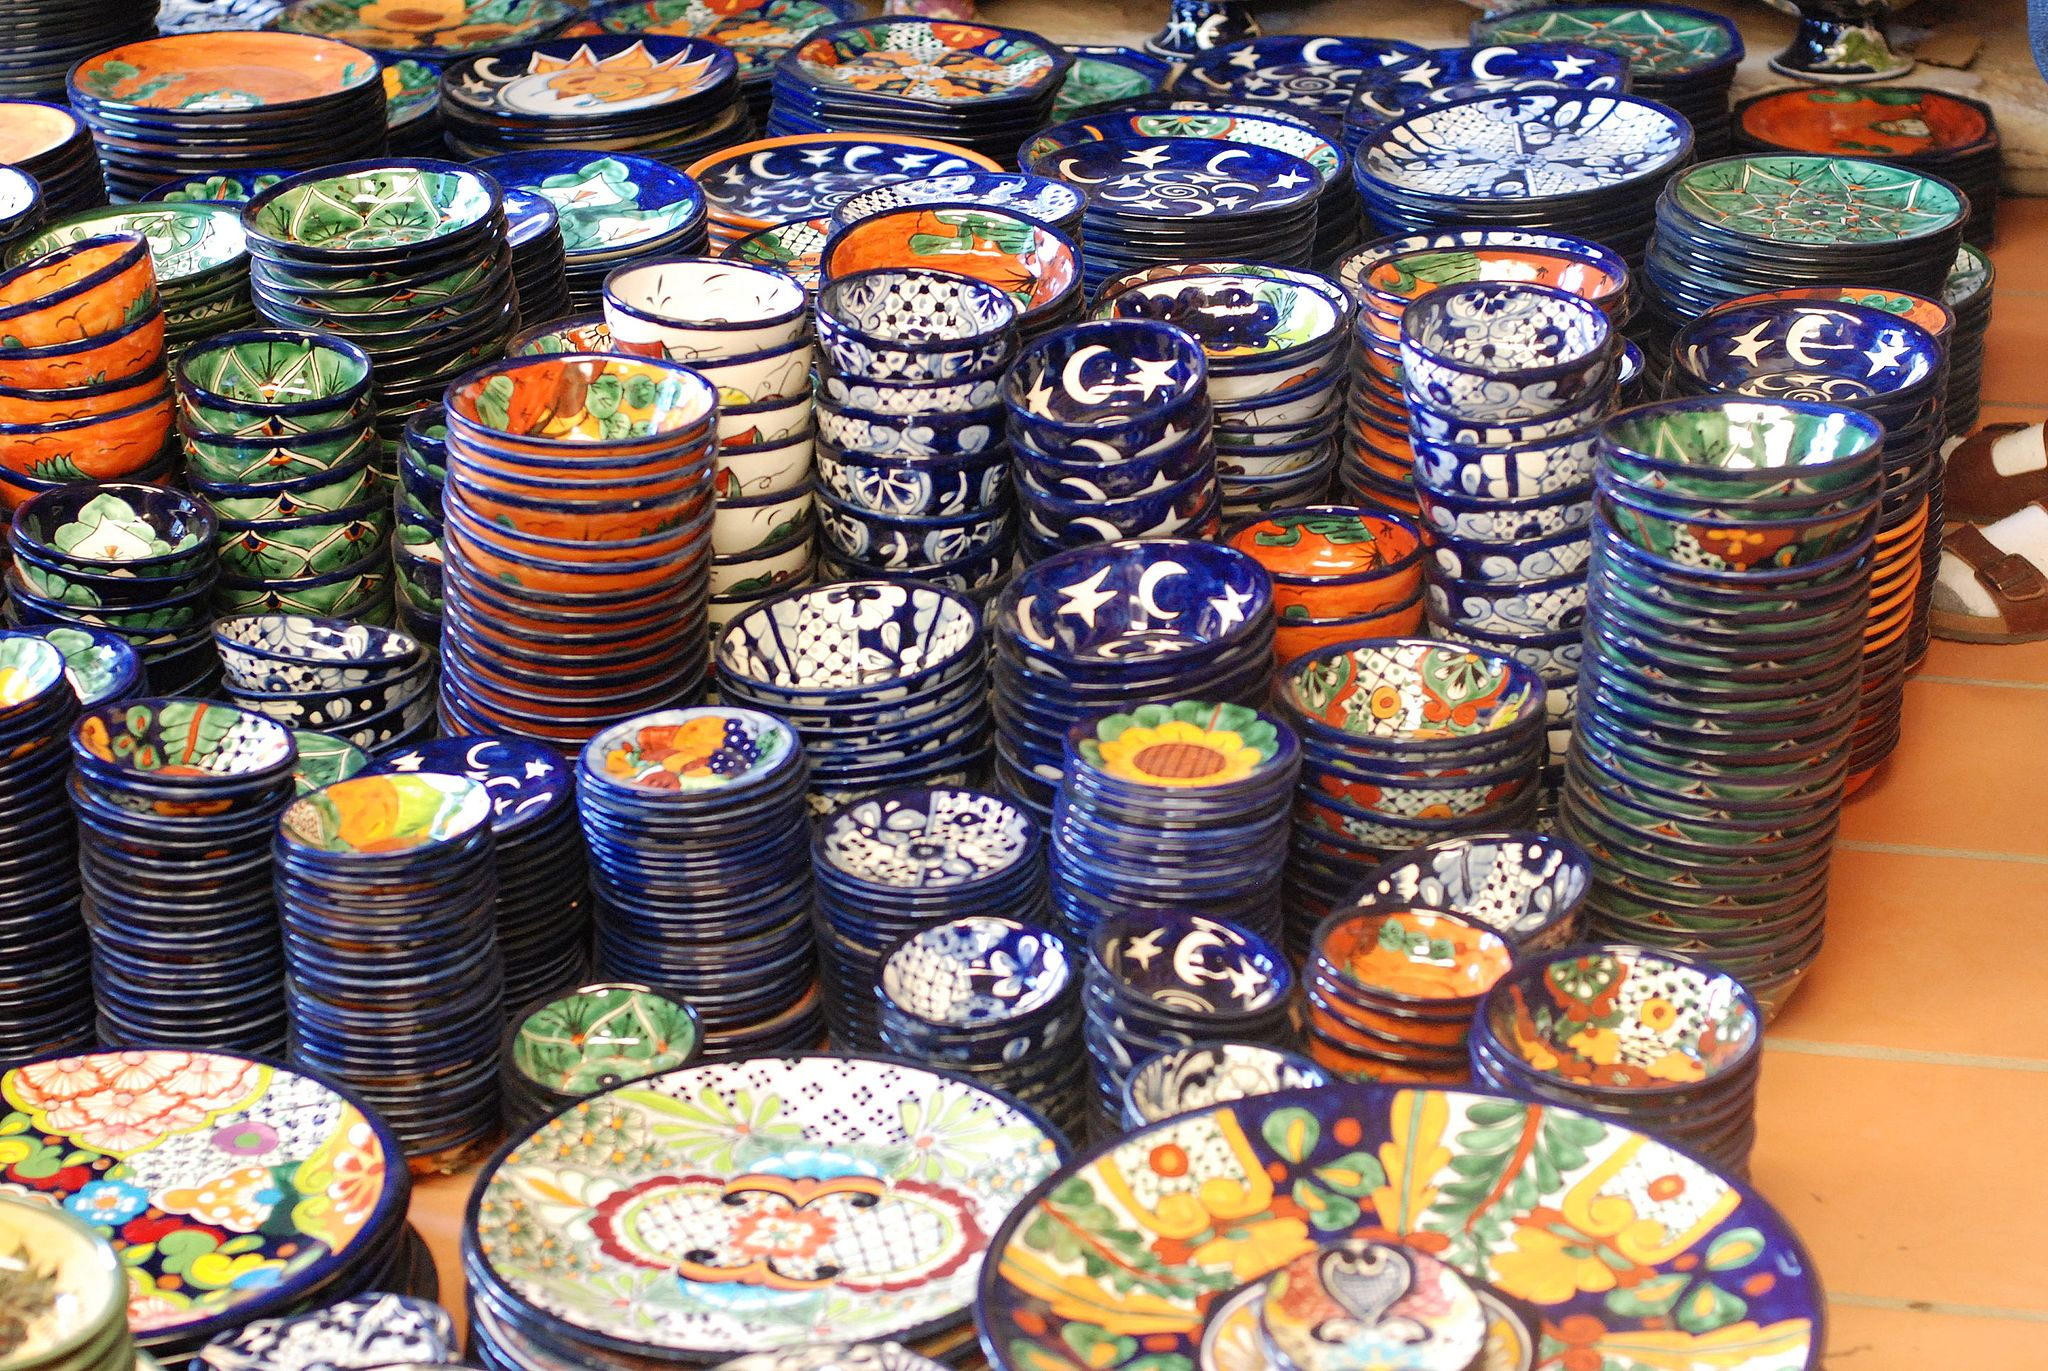 Crockery is a practical way to add Mexican touches to your home   © Cameron Nordholm/WikiCommons